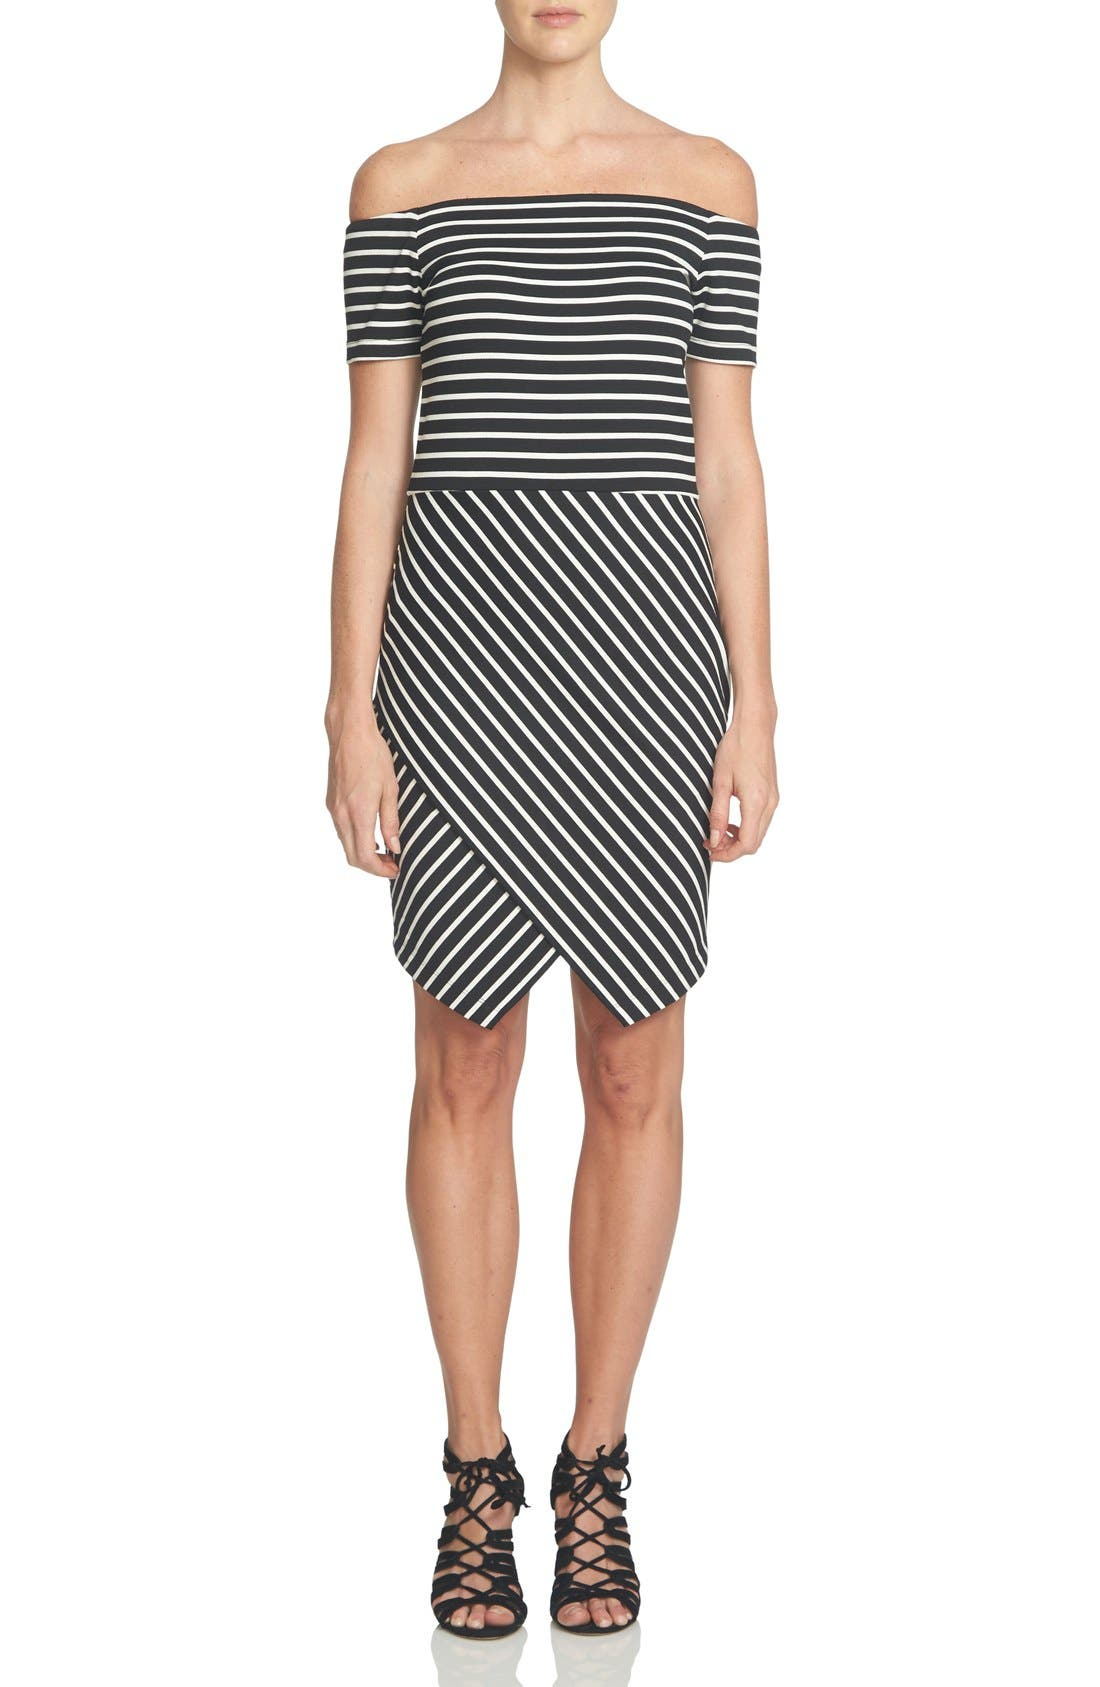 Alternate Image 1 Selected - 1.STATE Stripe Off the Shoulder Body-Con Dress